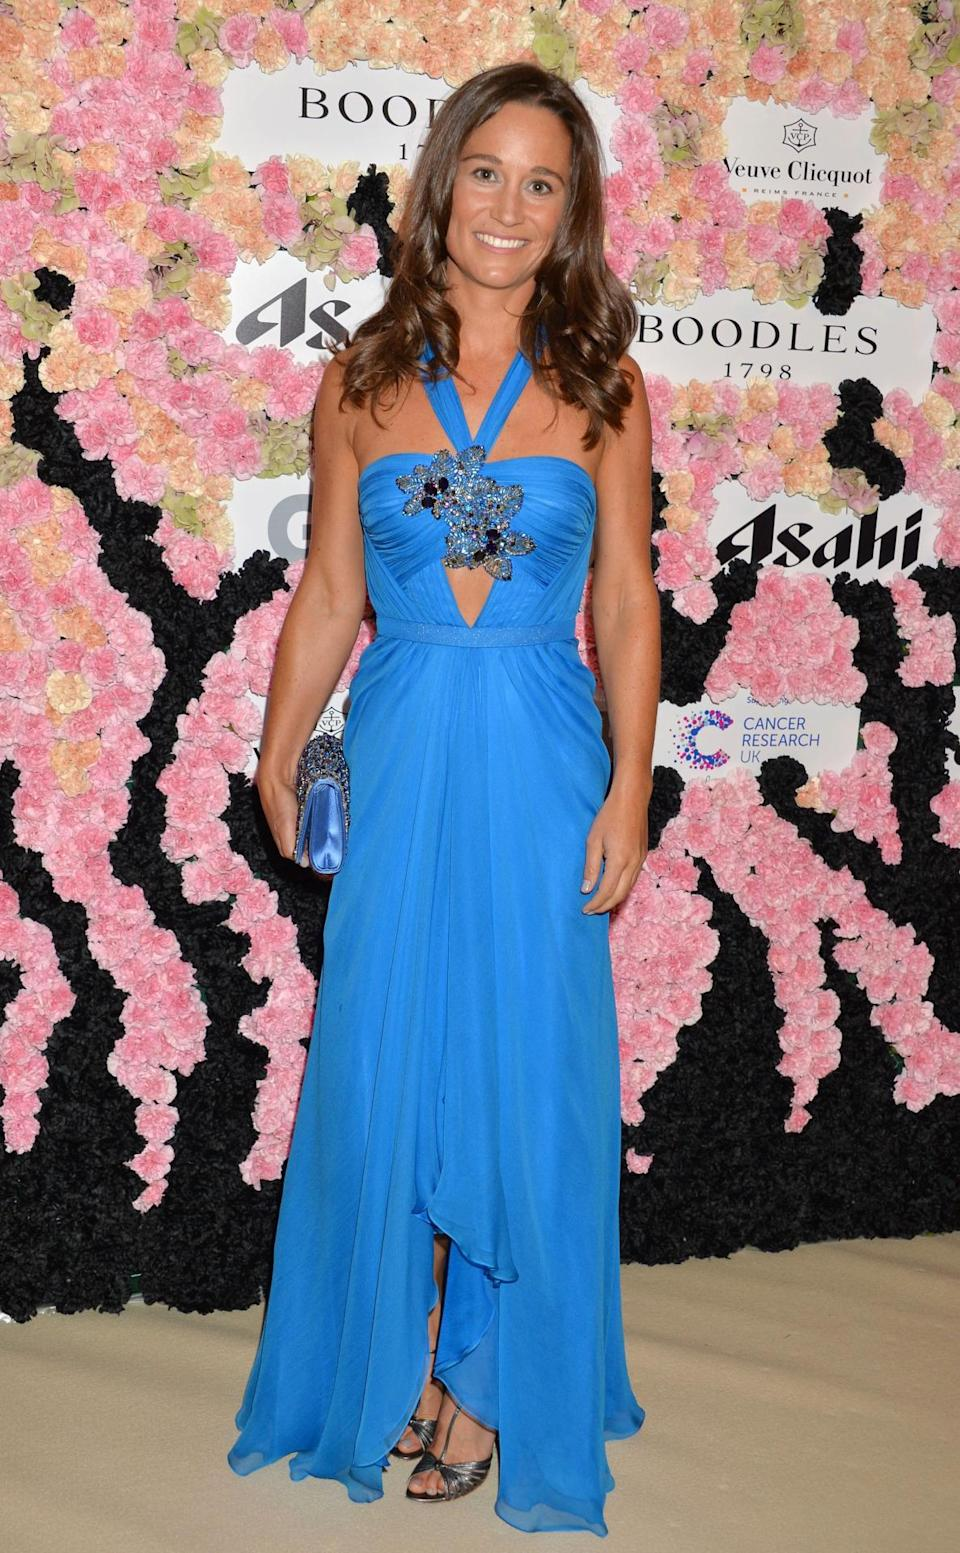 <p>Wearing a tiered Jenny Packham dress, boasting a keyhole design, Pippa looked bronzed and beautiful at a ball in September 2015. <i>[Photo: Rex]</i> </p>